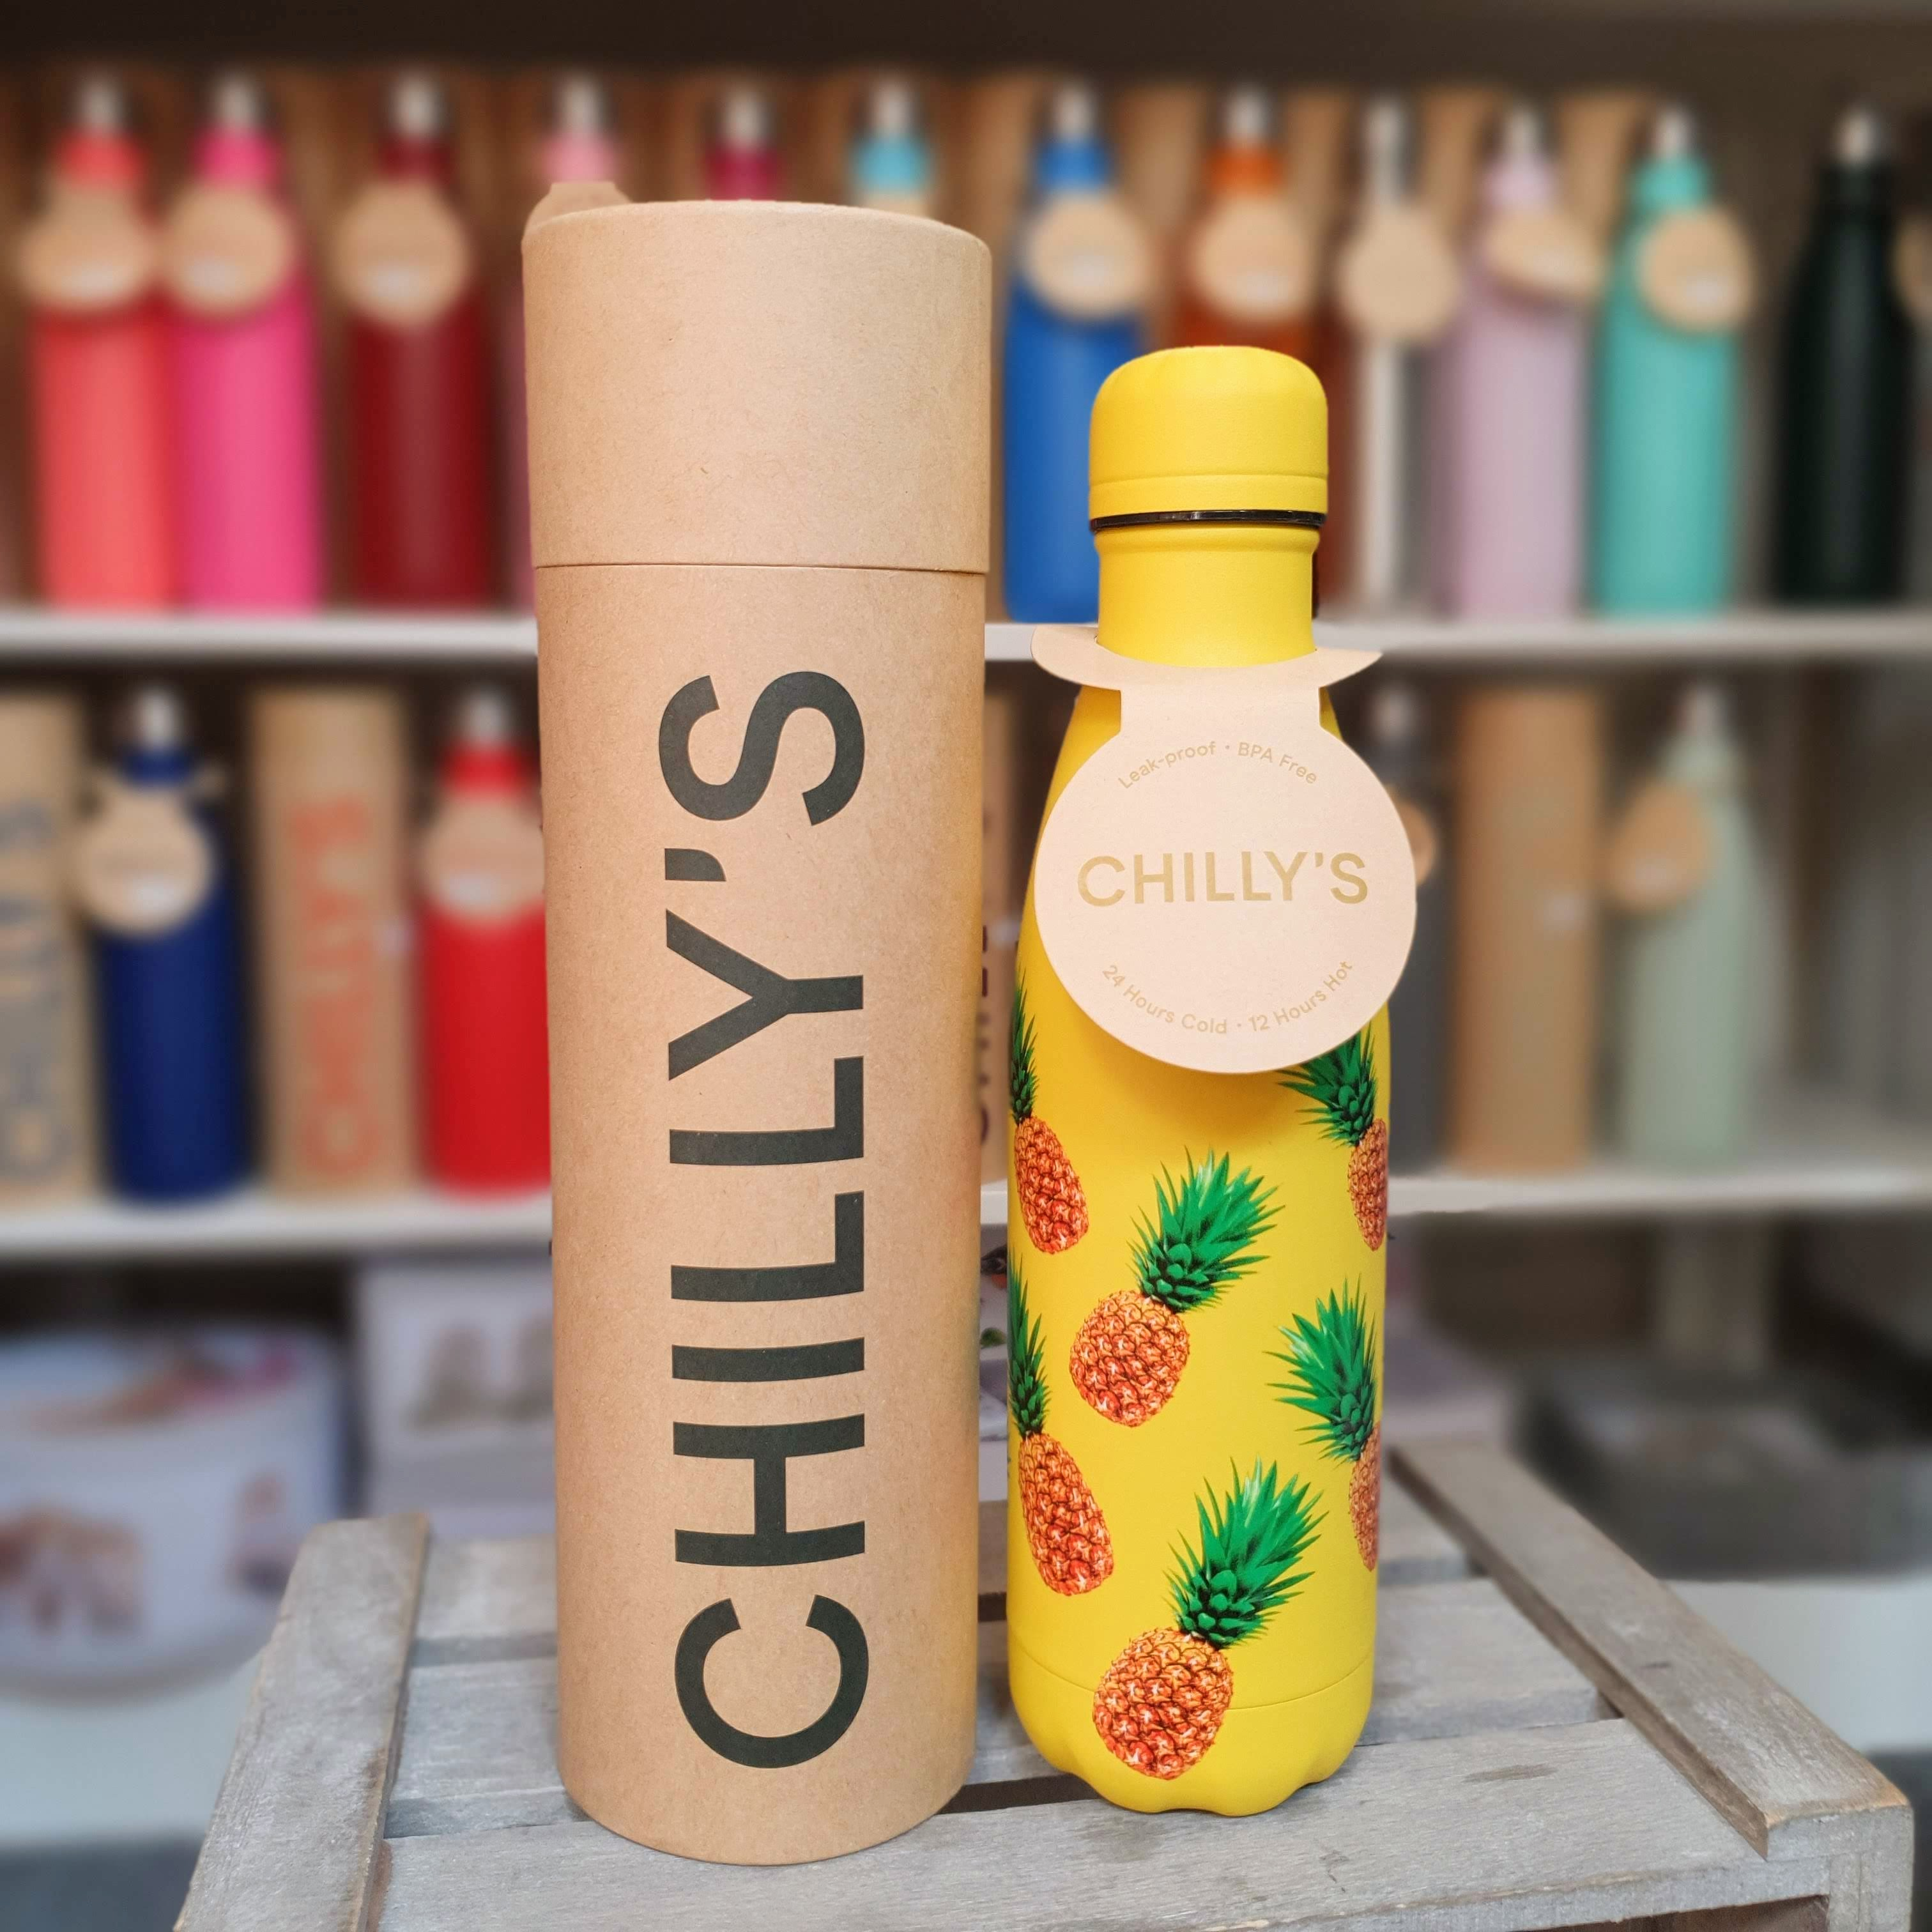 Pineapple Chilly's Bottle